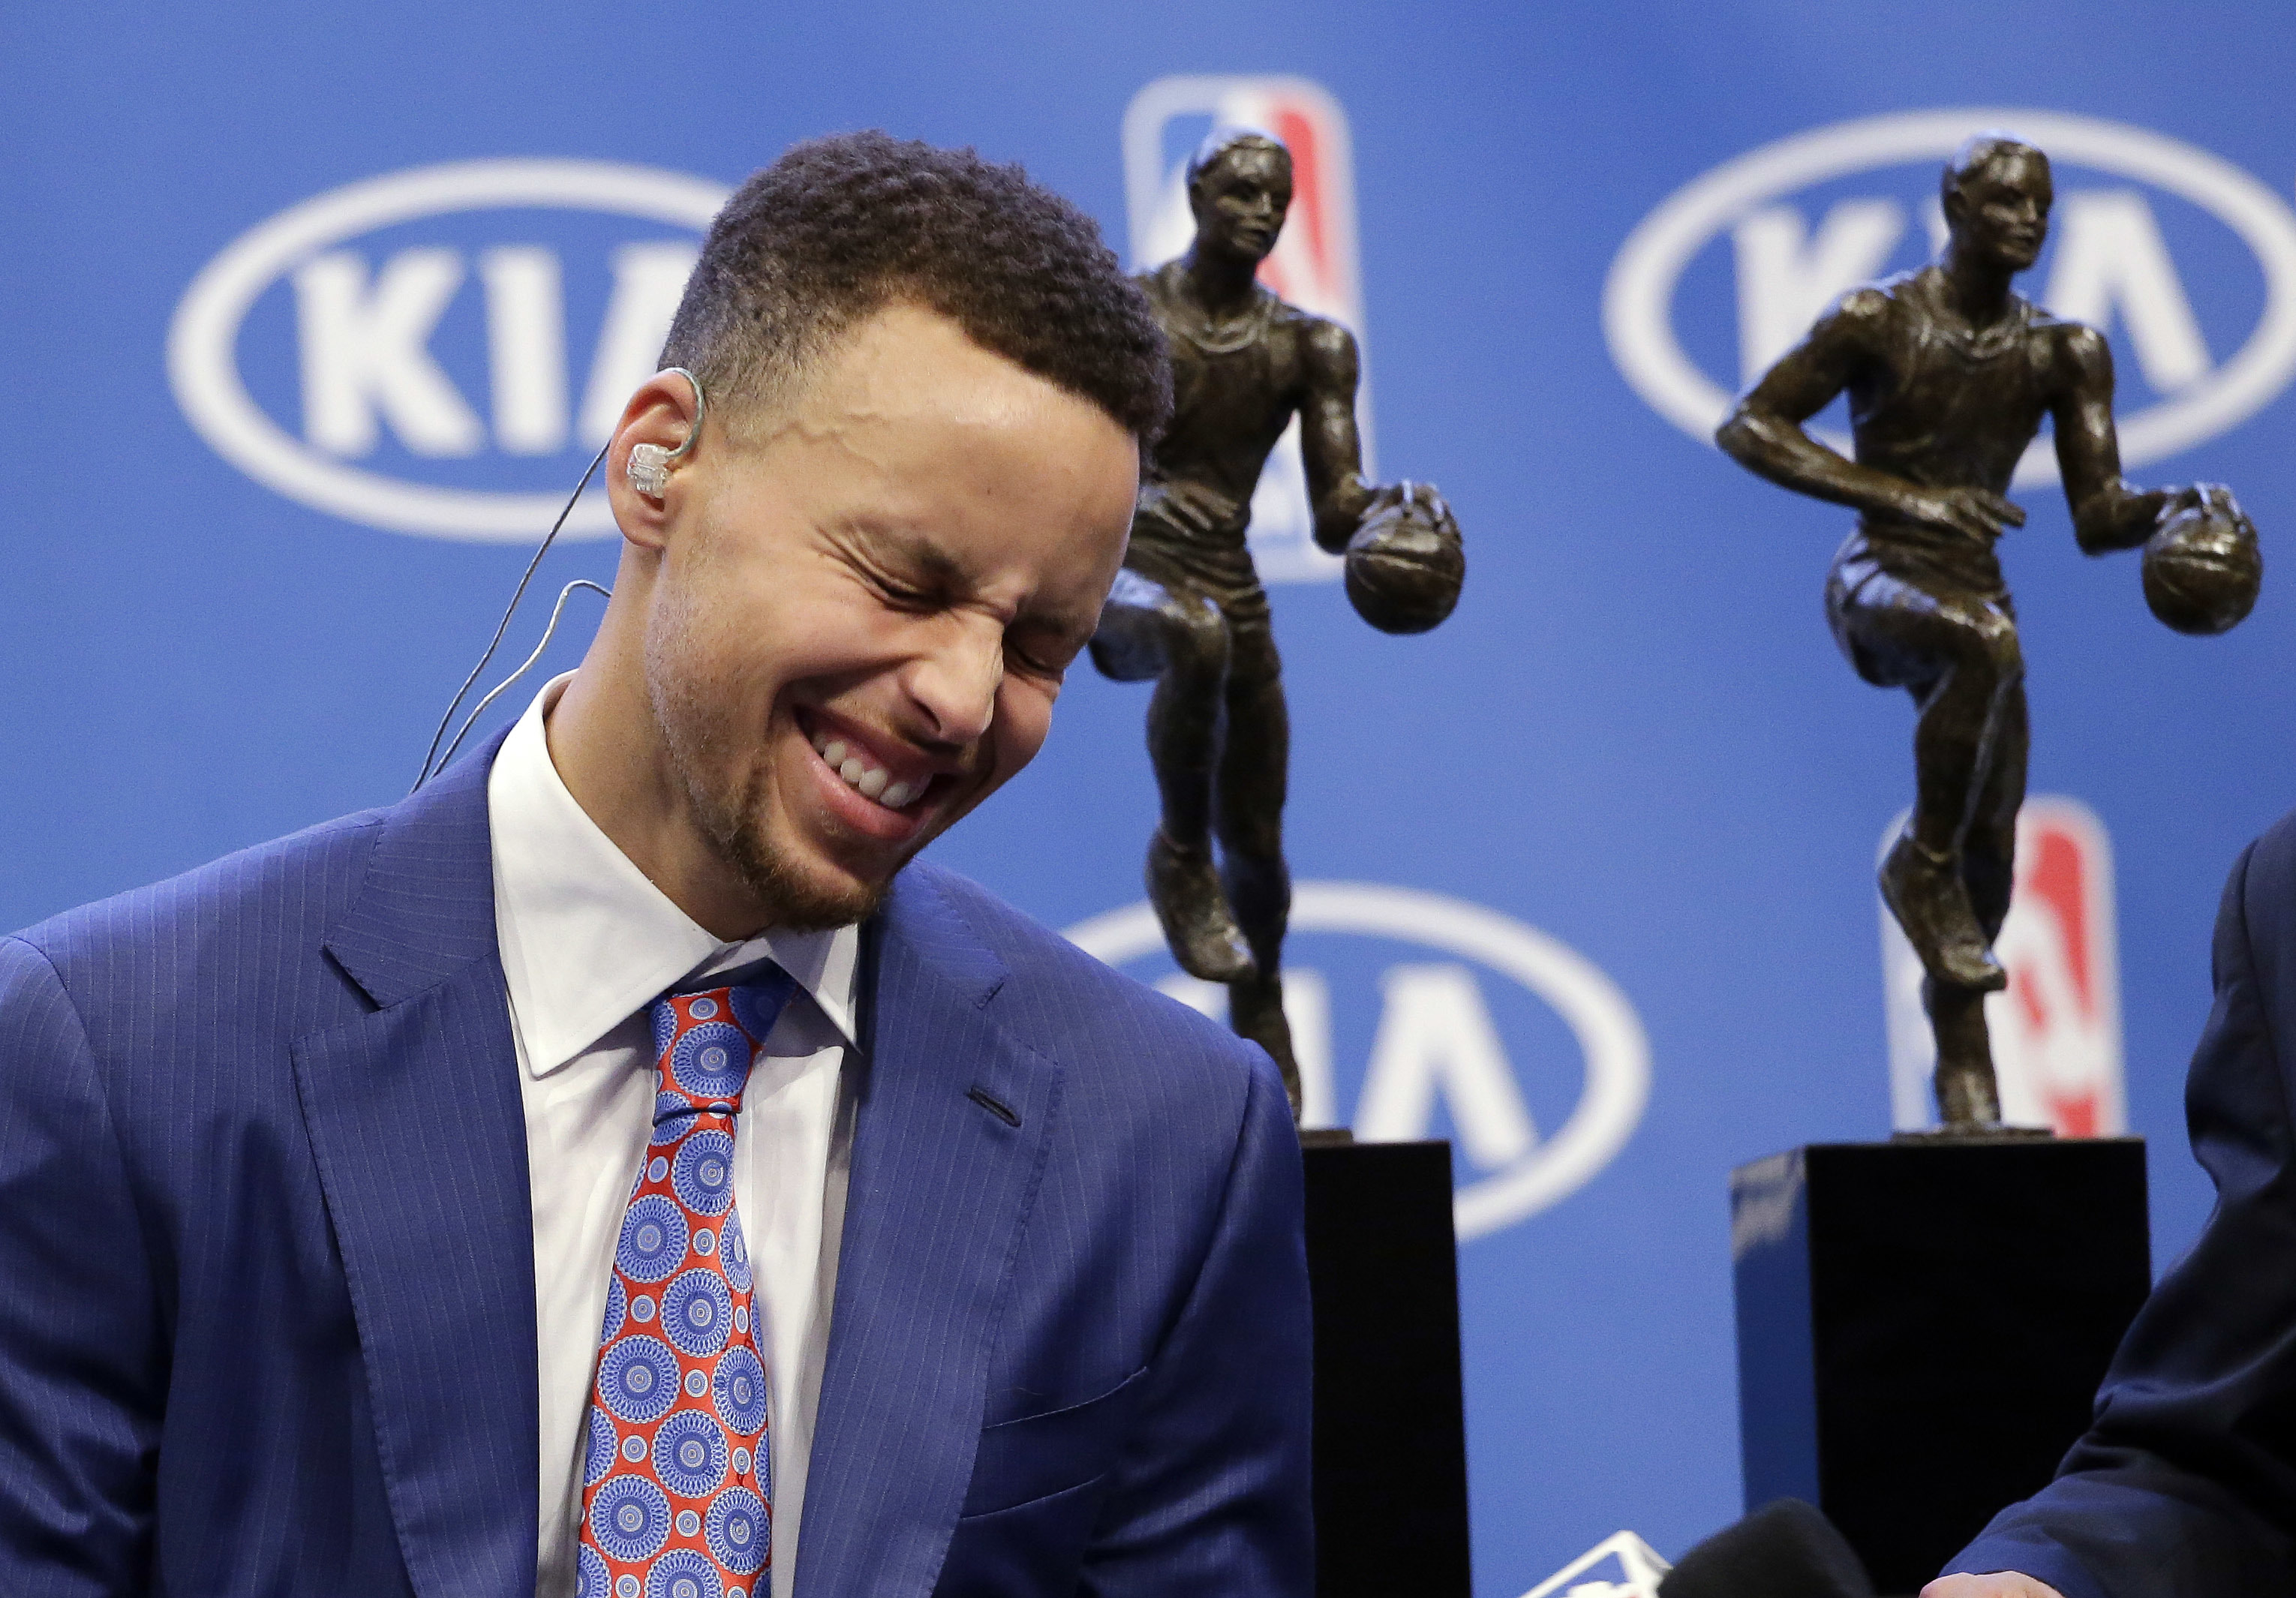 Stephen Curry Even Outshines Elites Of Yesteryear